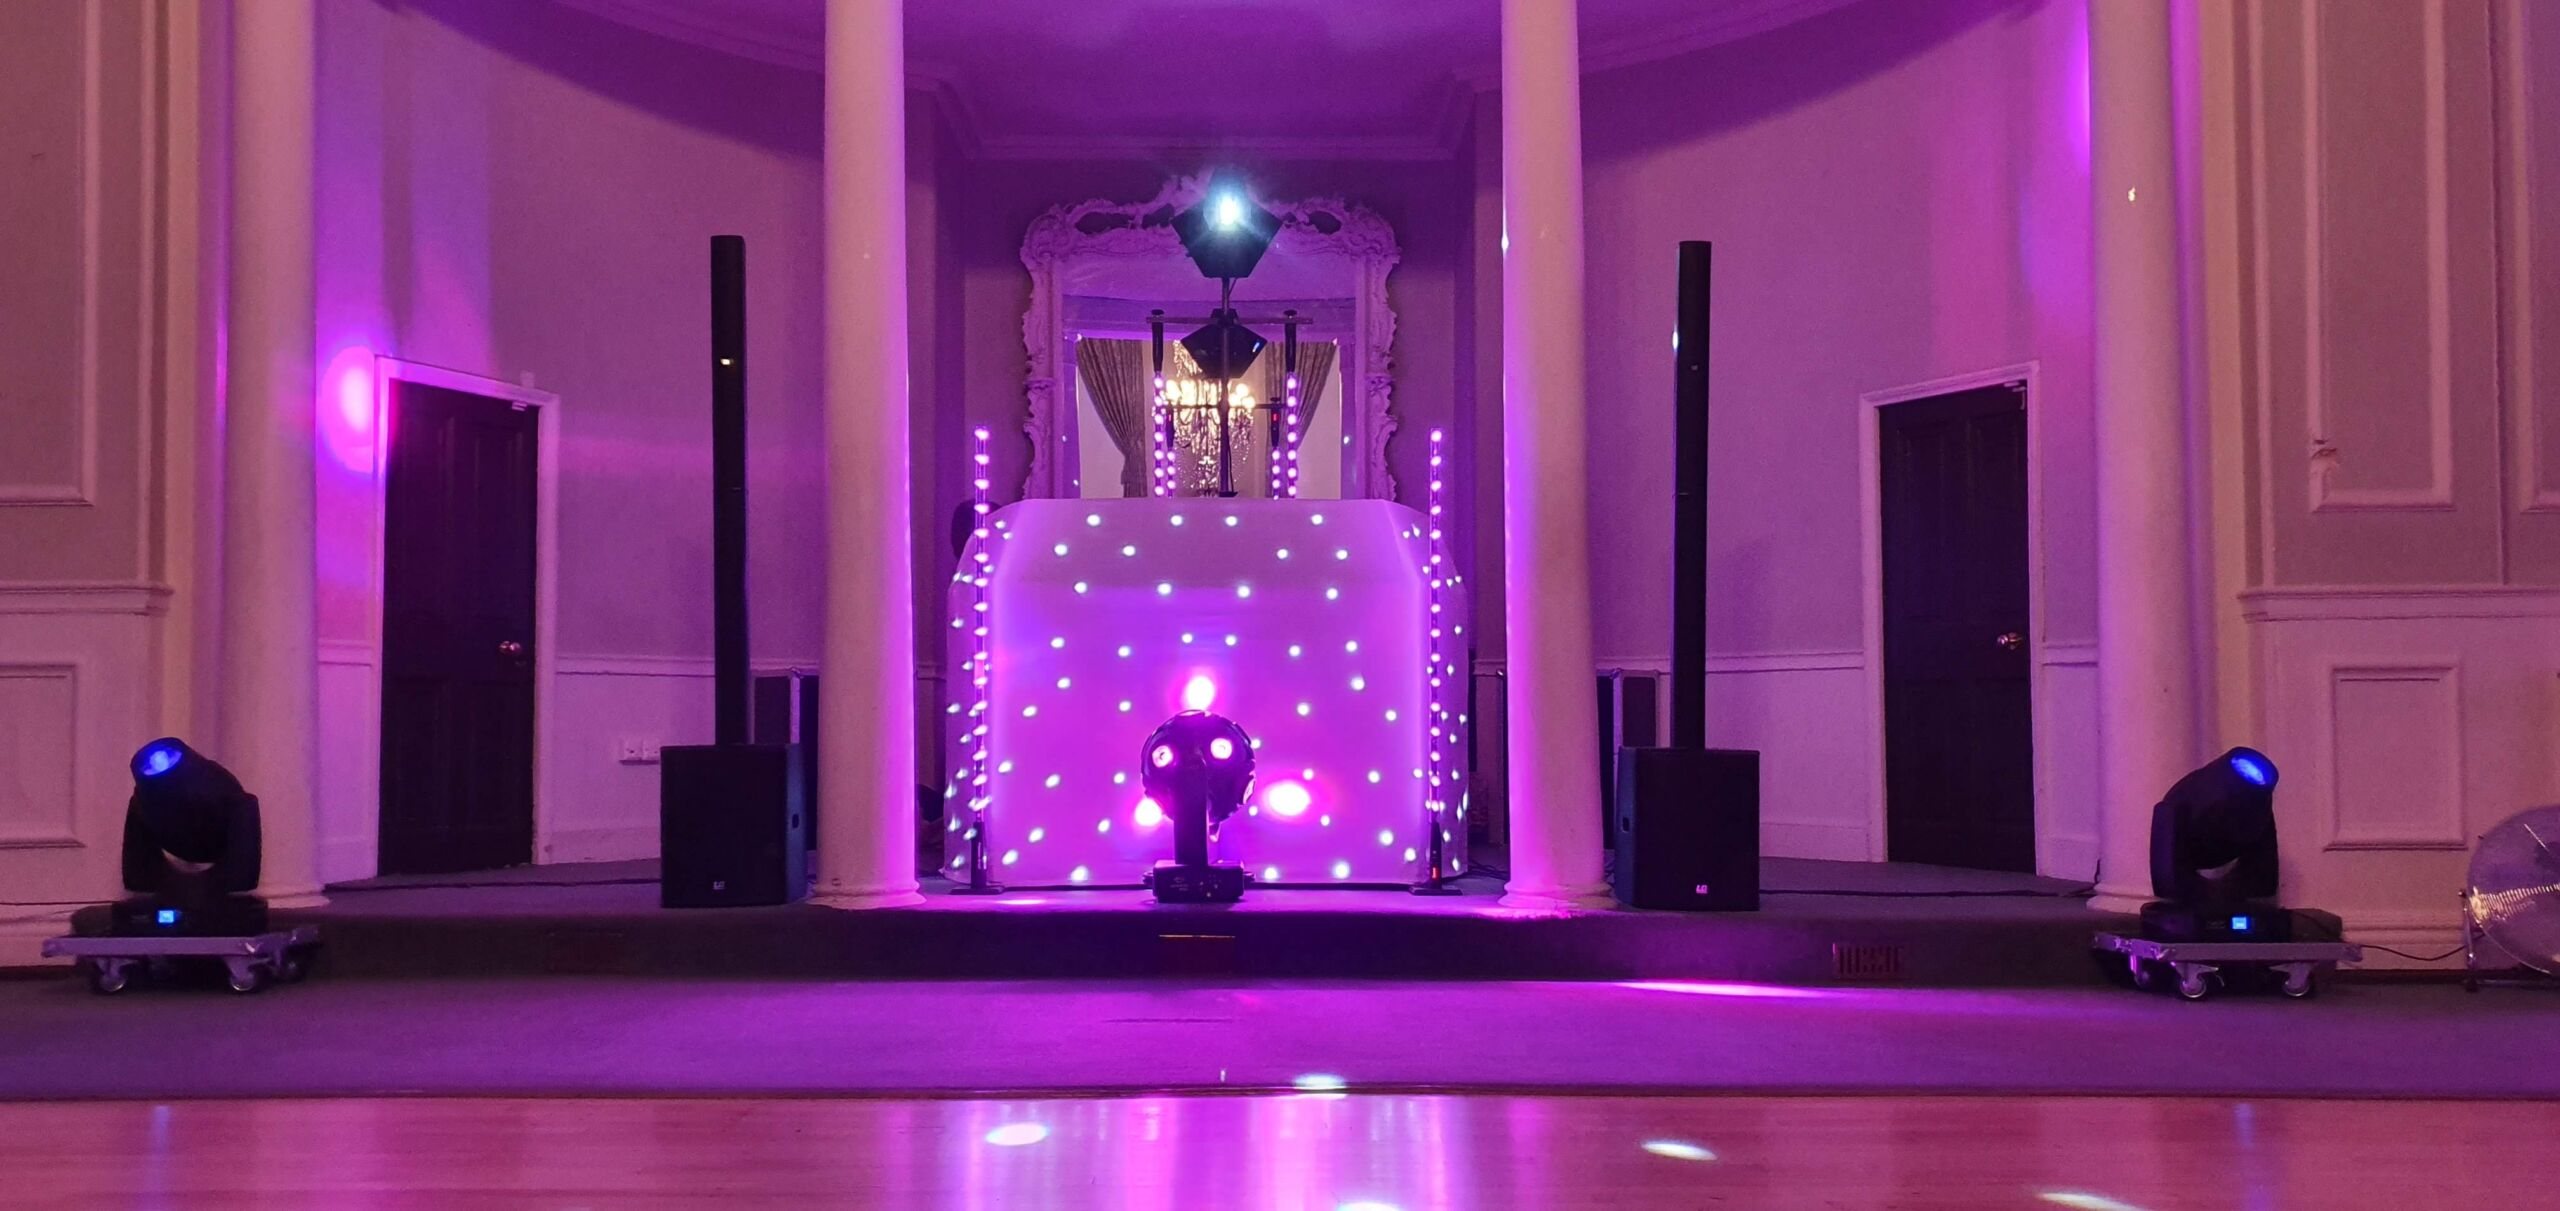 Mobile Disco set up with pink uplighting at The Atheneum in Bury St Edmunds, Suffolk